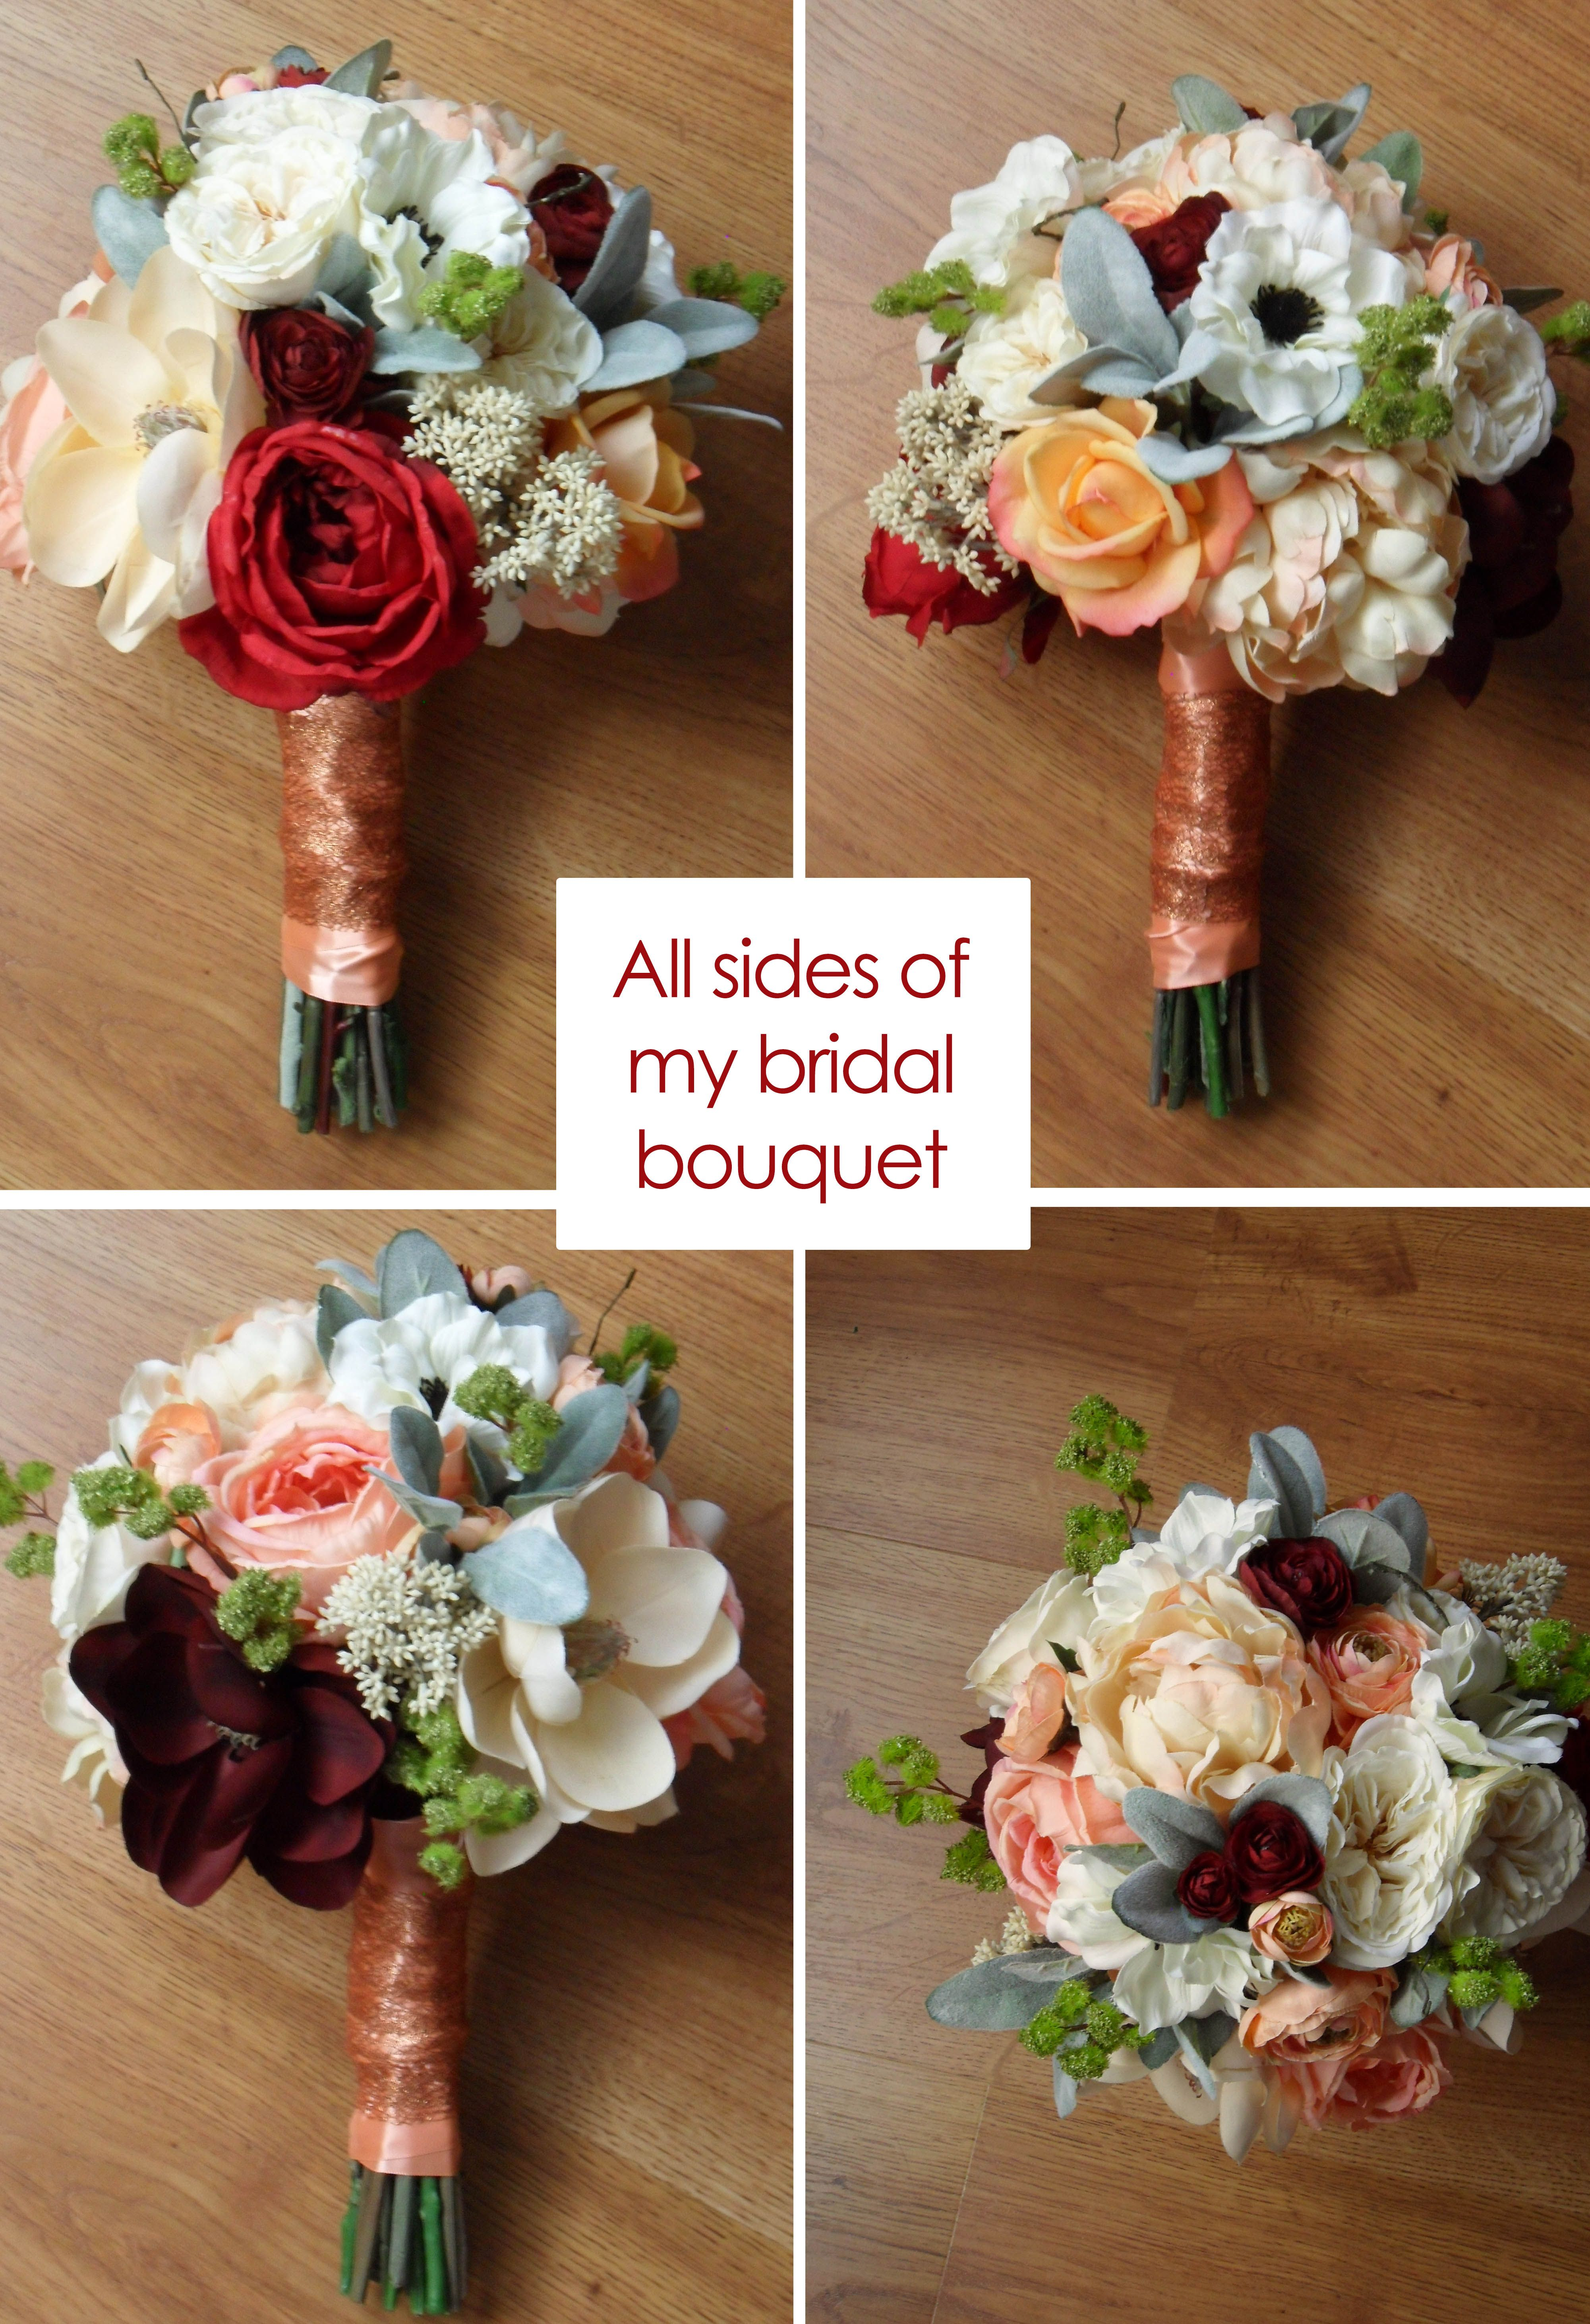 My Wedding Chat How To Make Your Own Bouquet For The Big Day